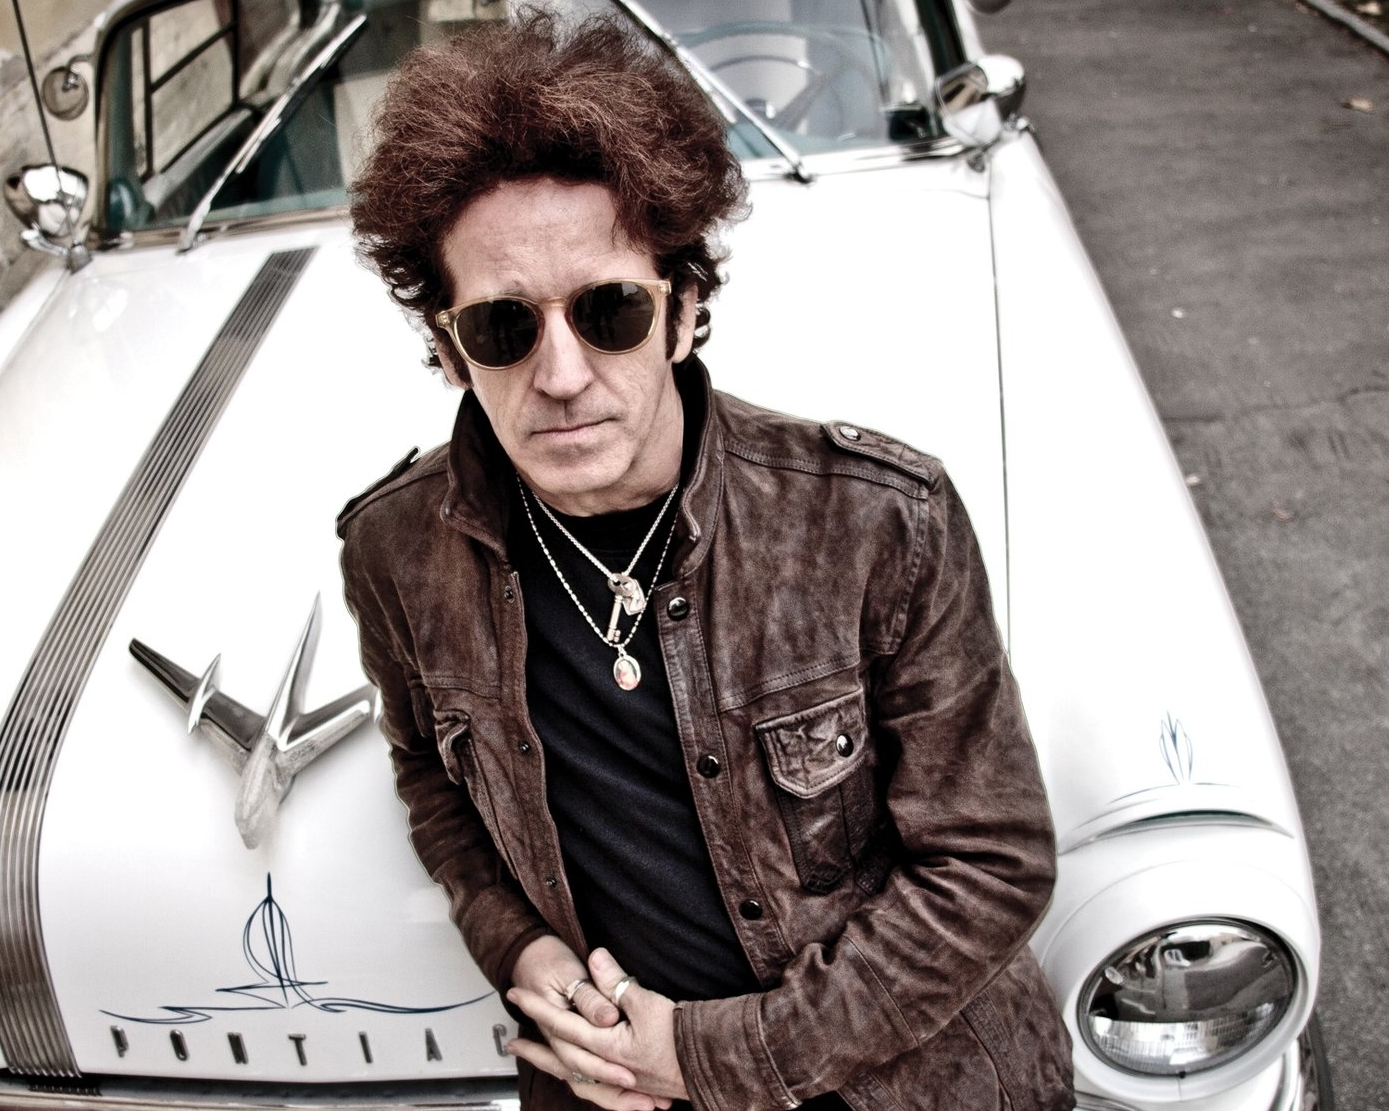 Willie Nile : The Pete Fornatale Concert @MWBshows #MWBpresents